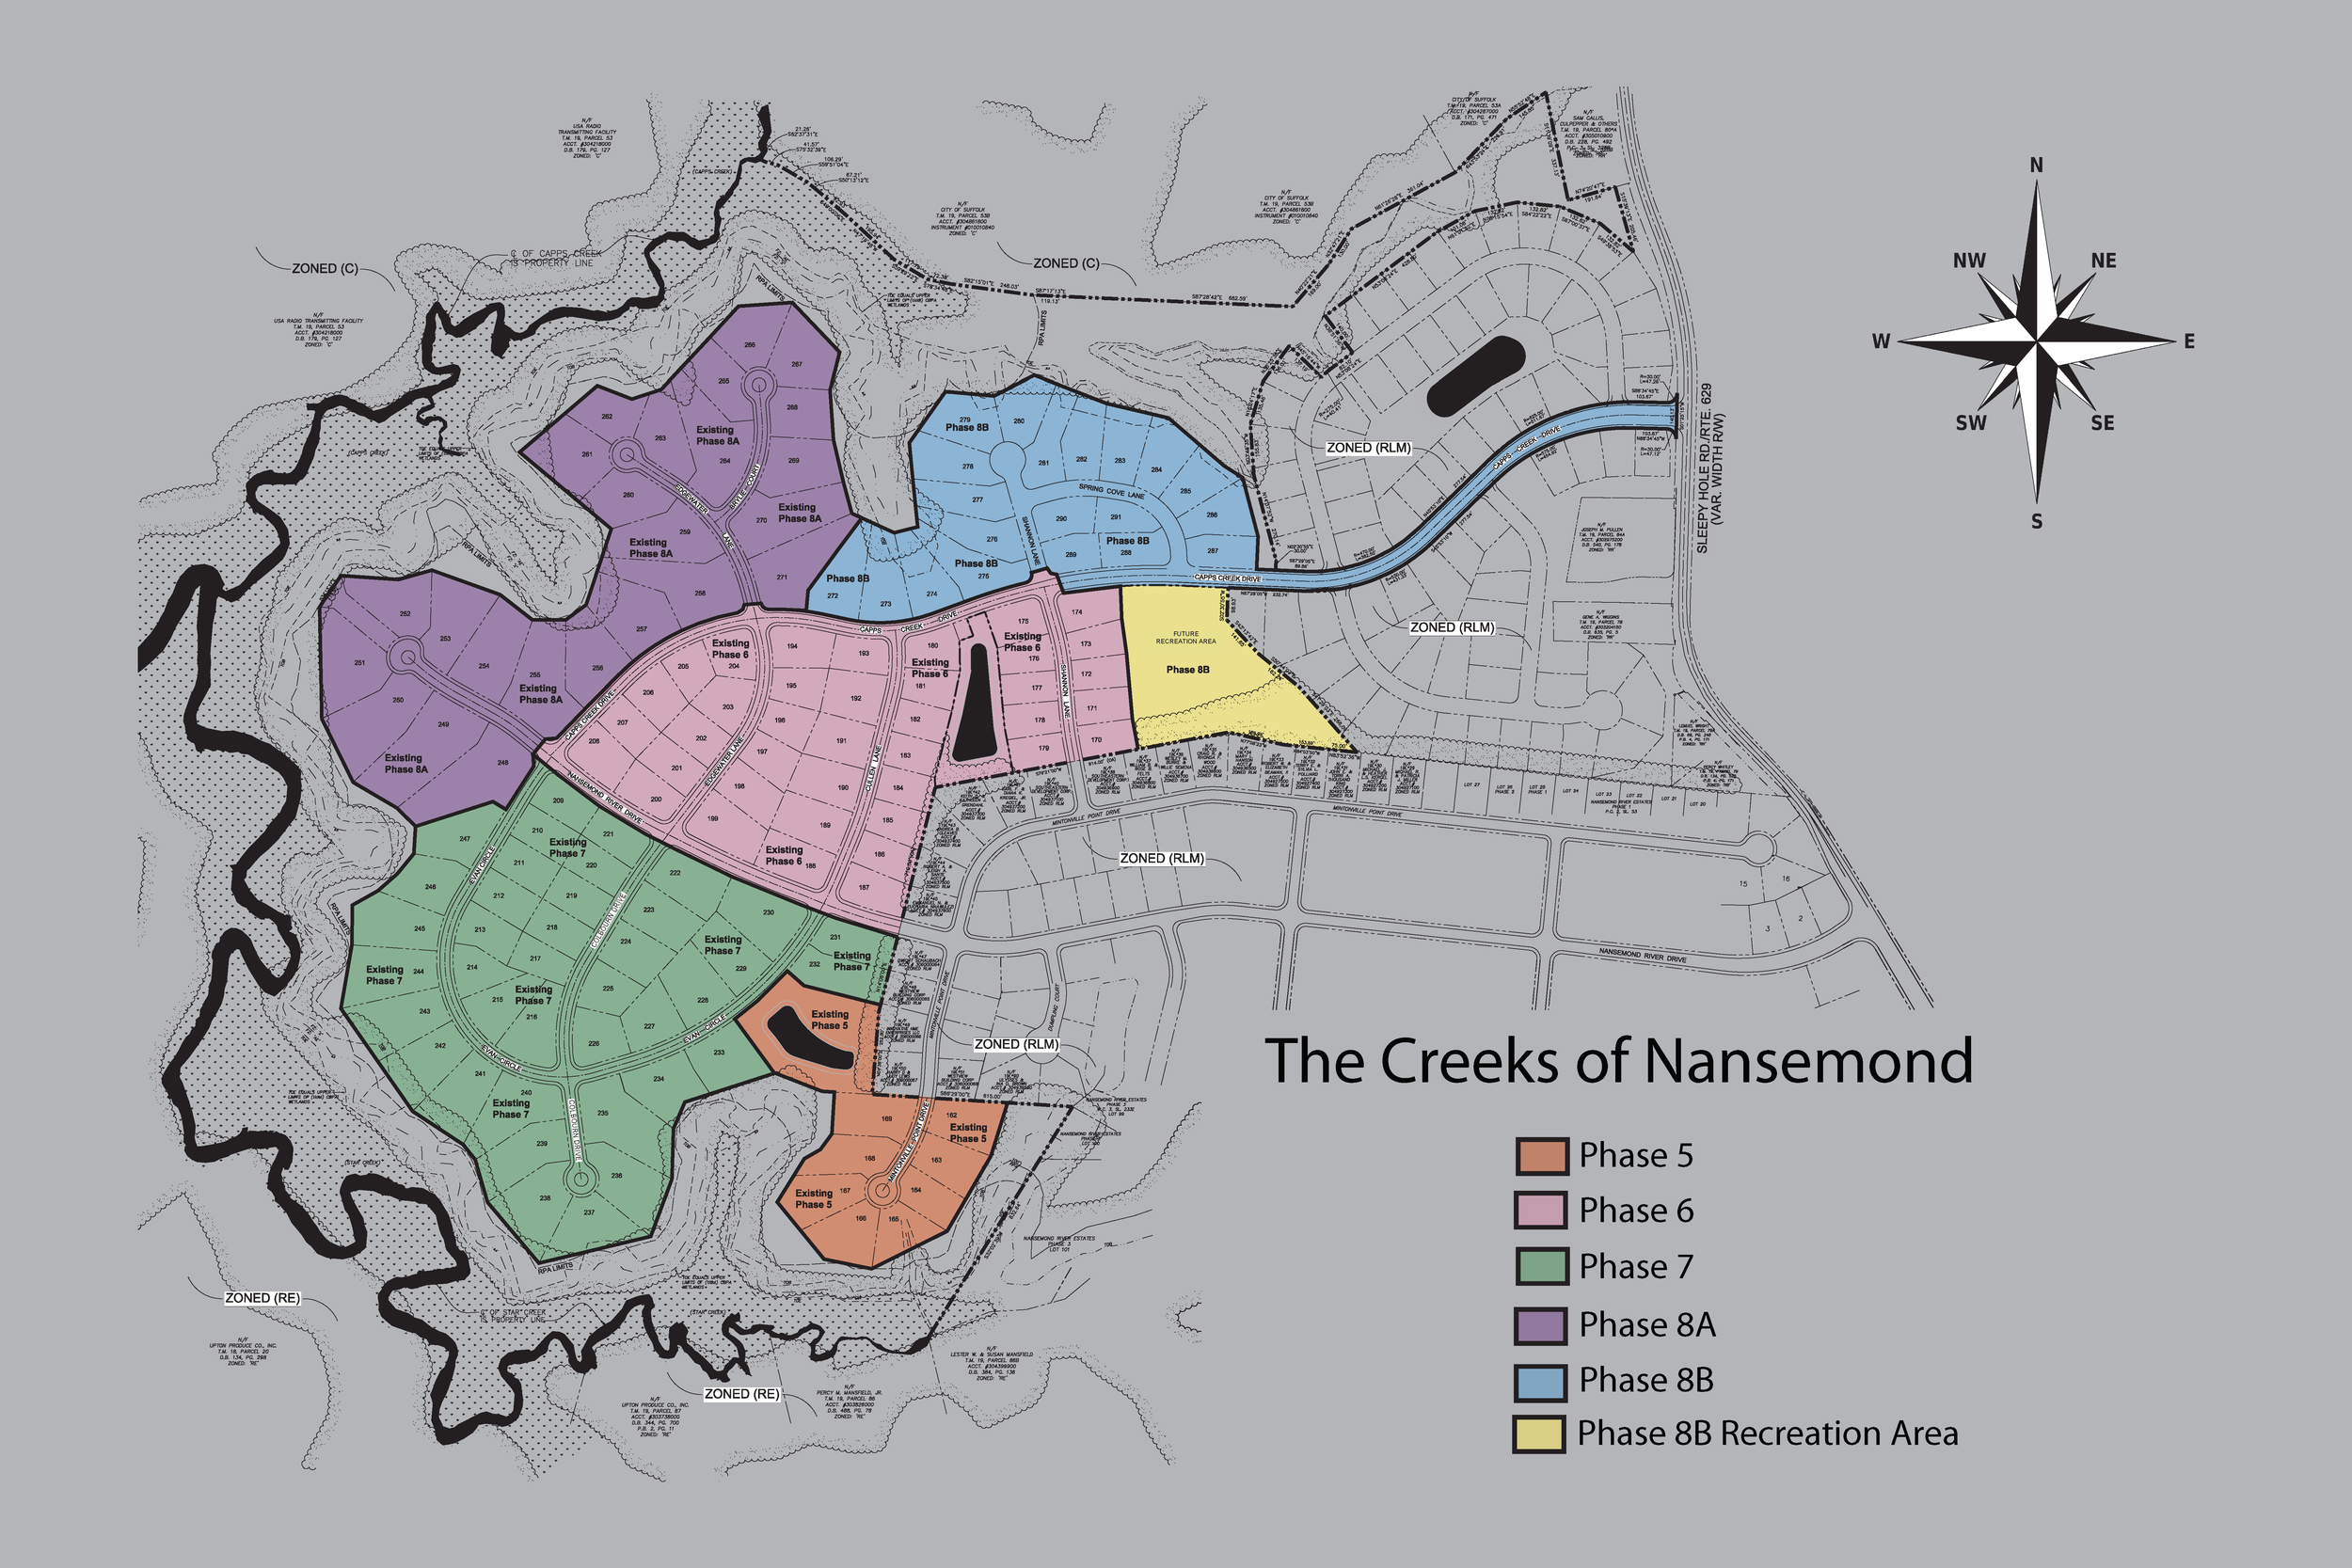 Poster - Phases 5-8 - The Creeks of Nansemond.png